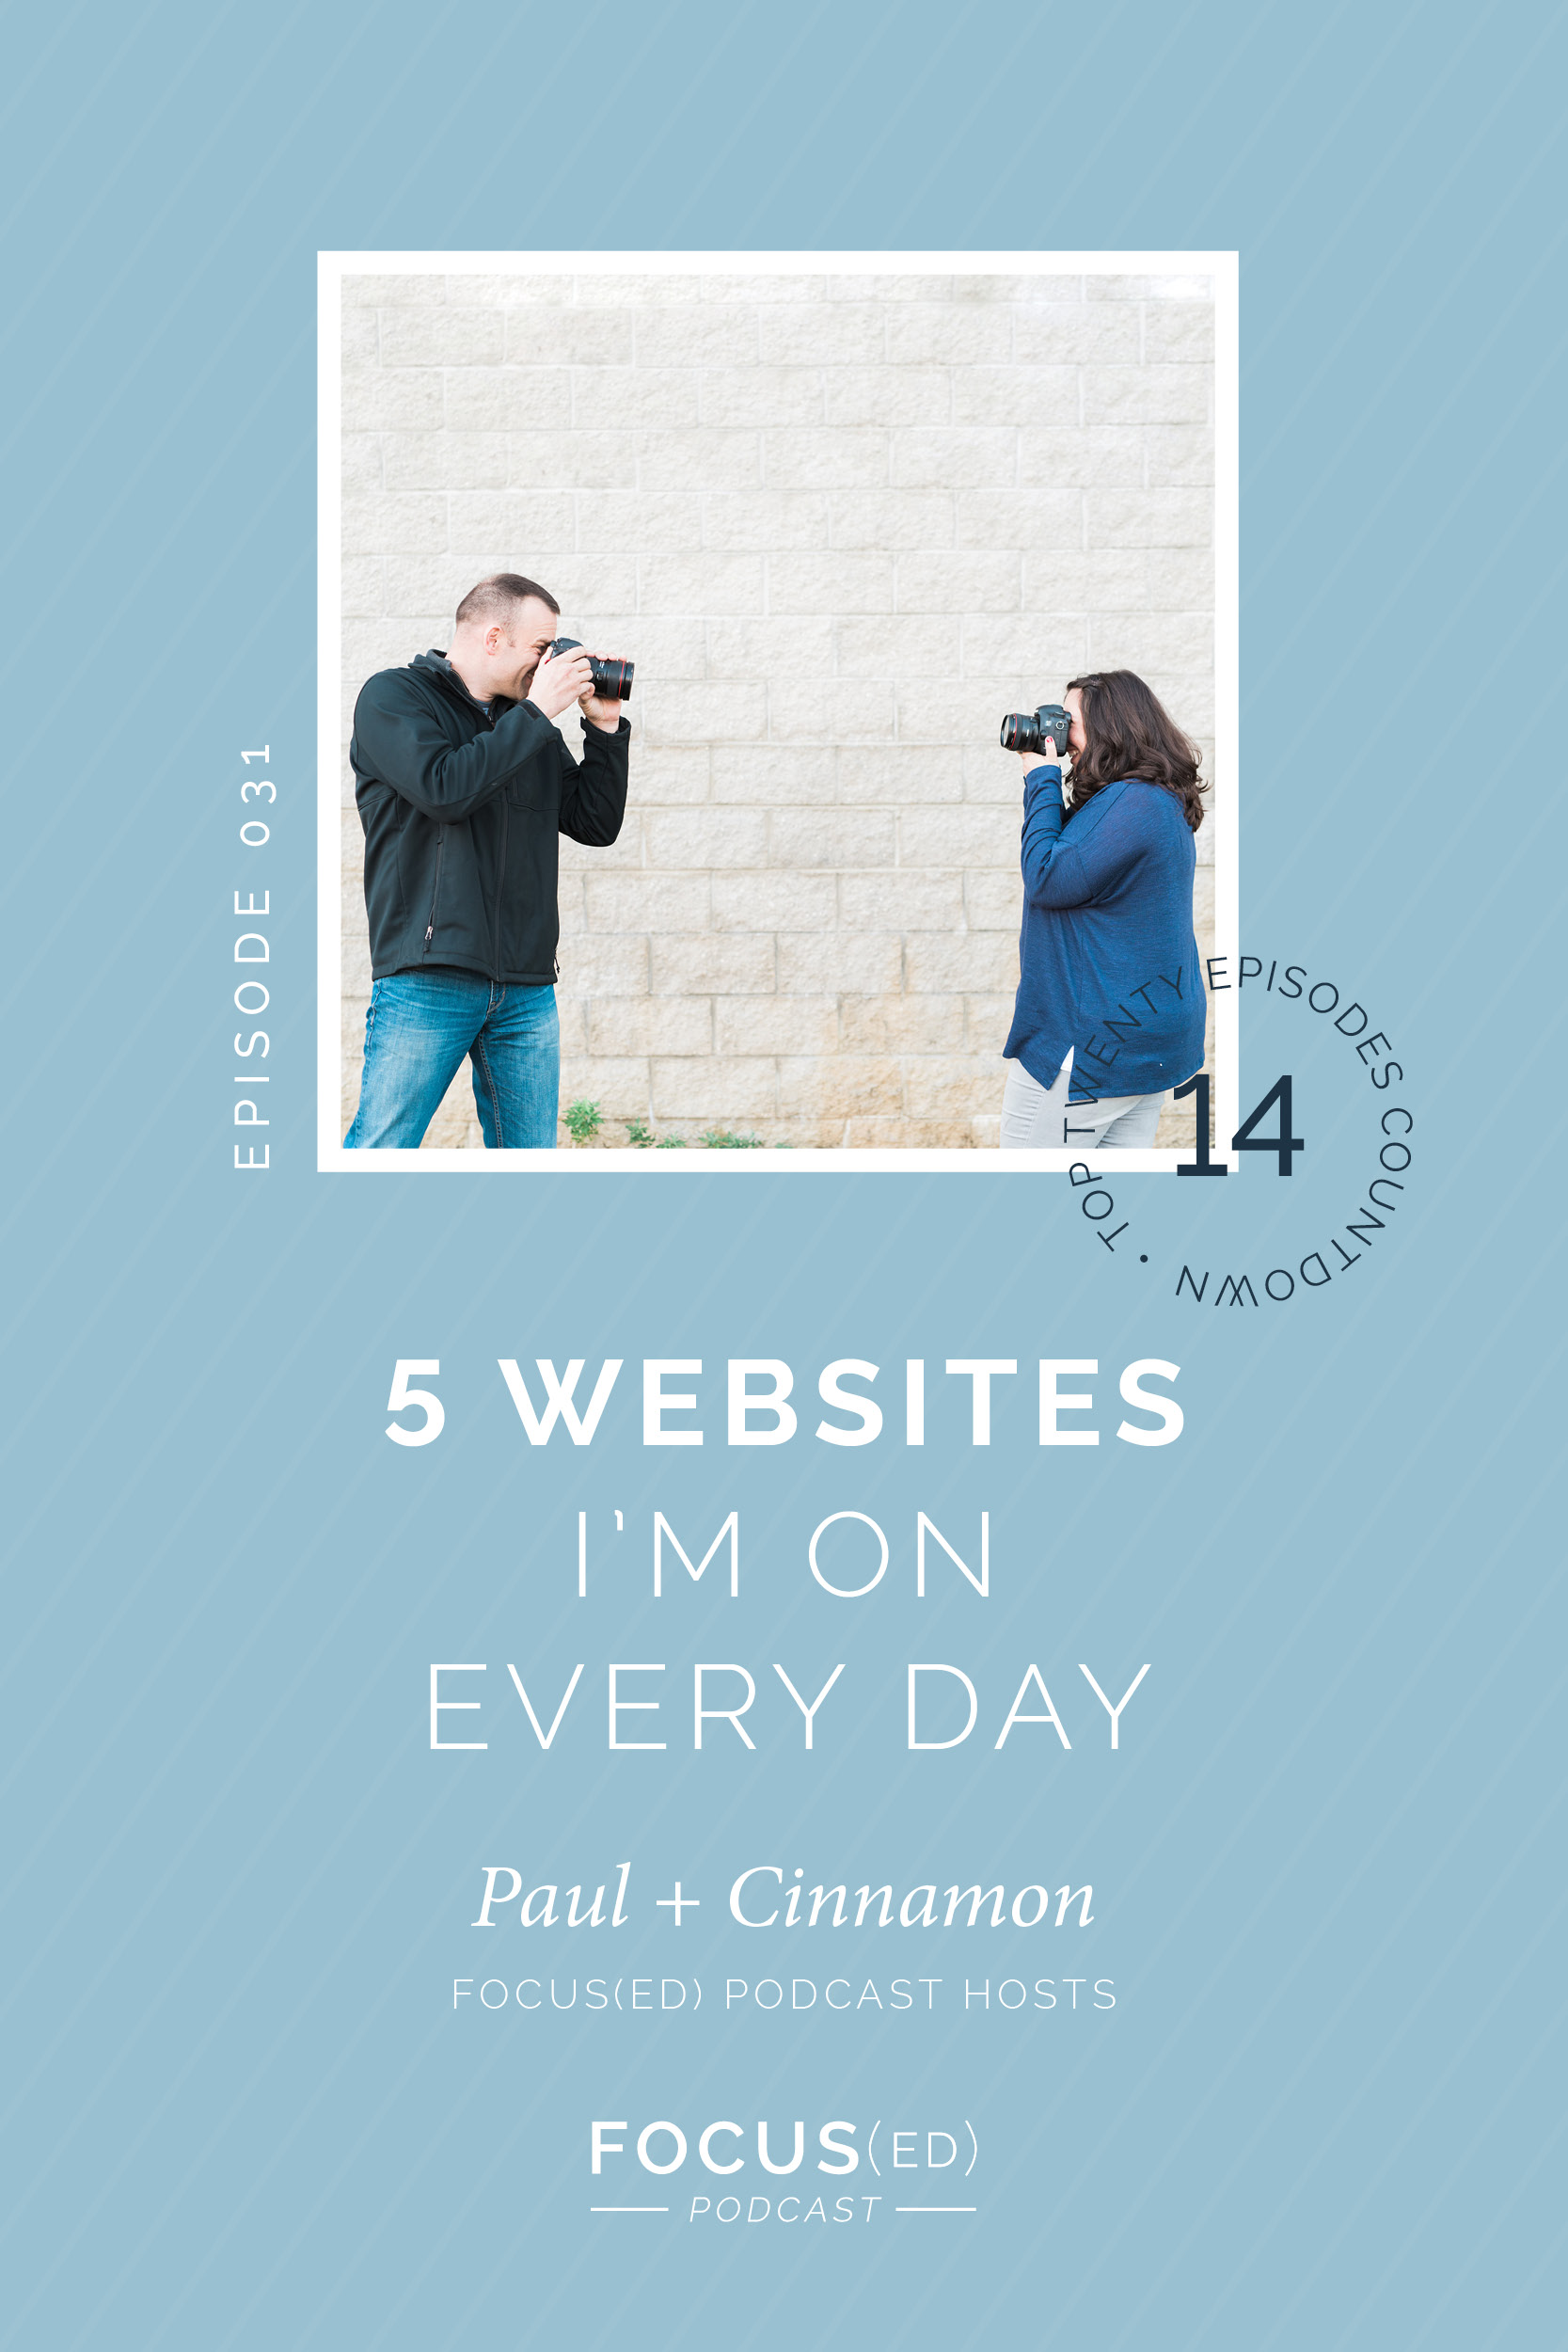 5 websites to utilize every day when running a photography business | Focus(ed) Podcast